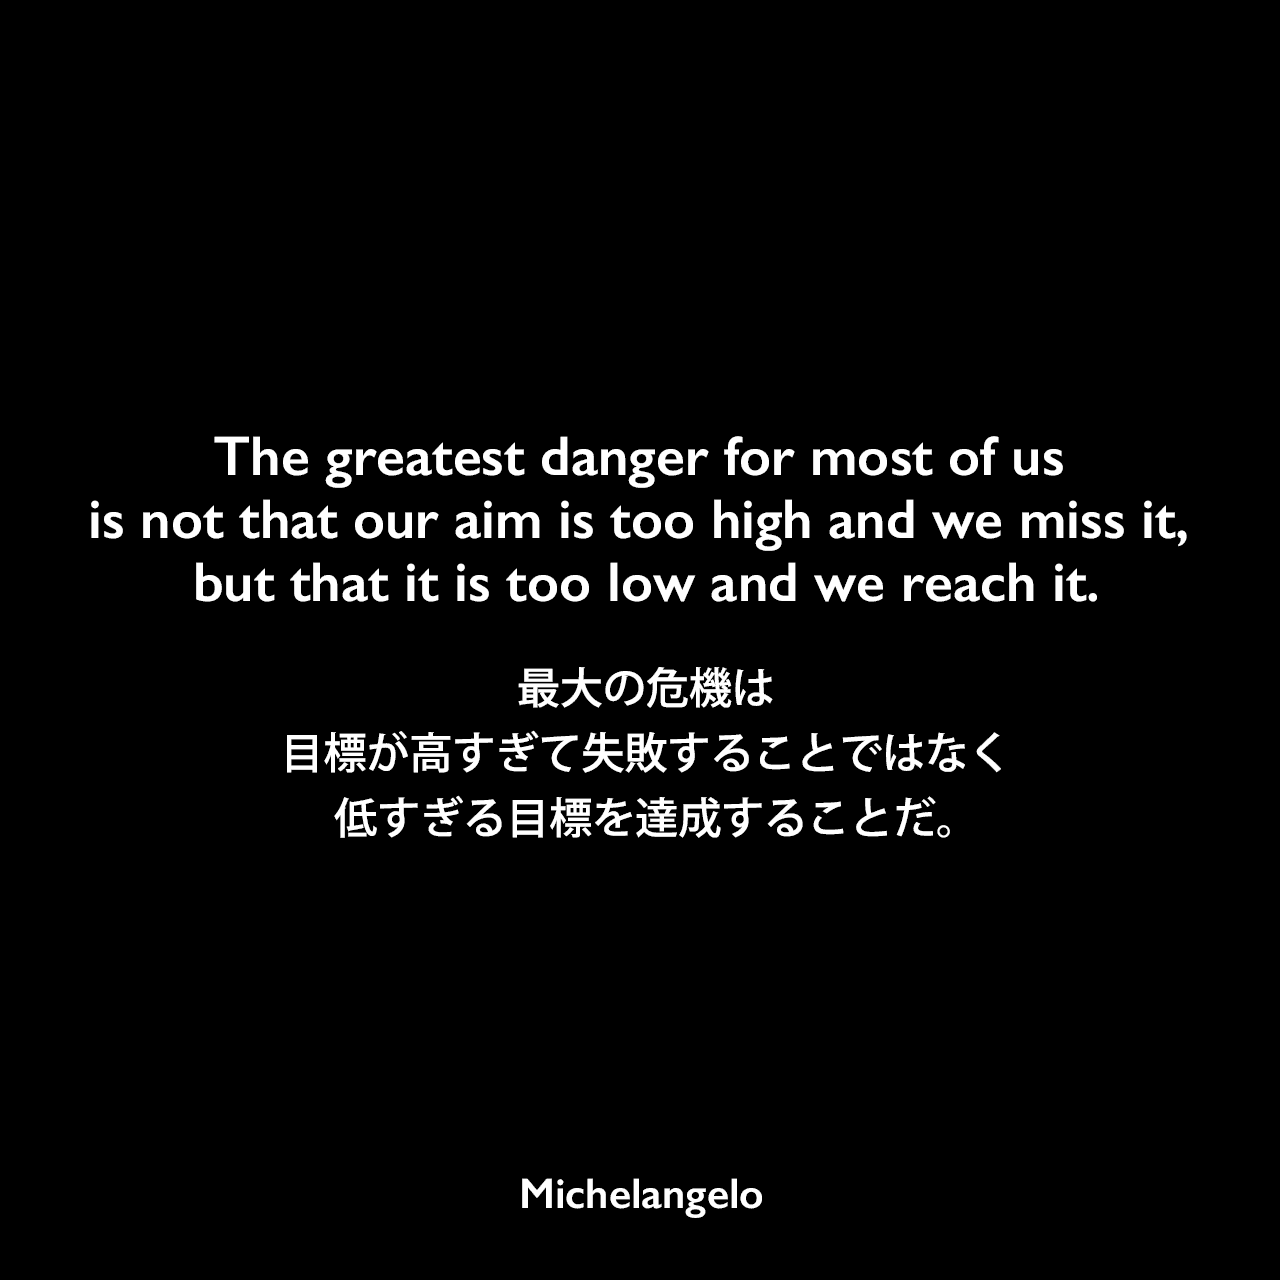 The greatest danger for most of us is not that our aim is too high and we miss it, but that it is too low and we reach it.最大の危機は、目標が高すぎて失敗することではなく、低すぎる目標を達成することだ。